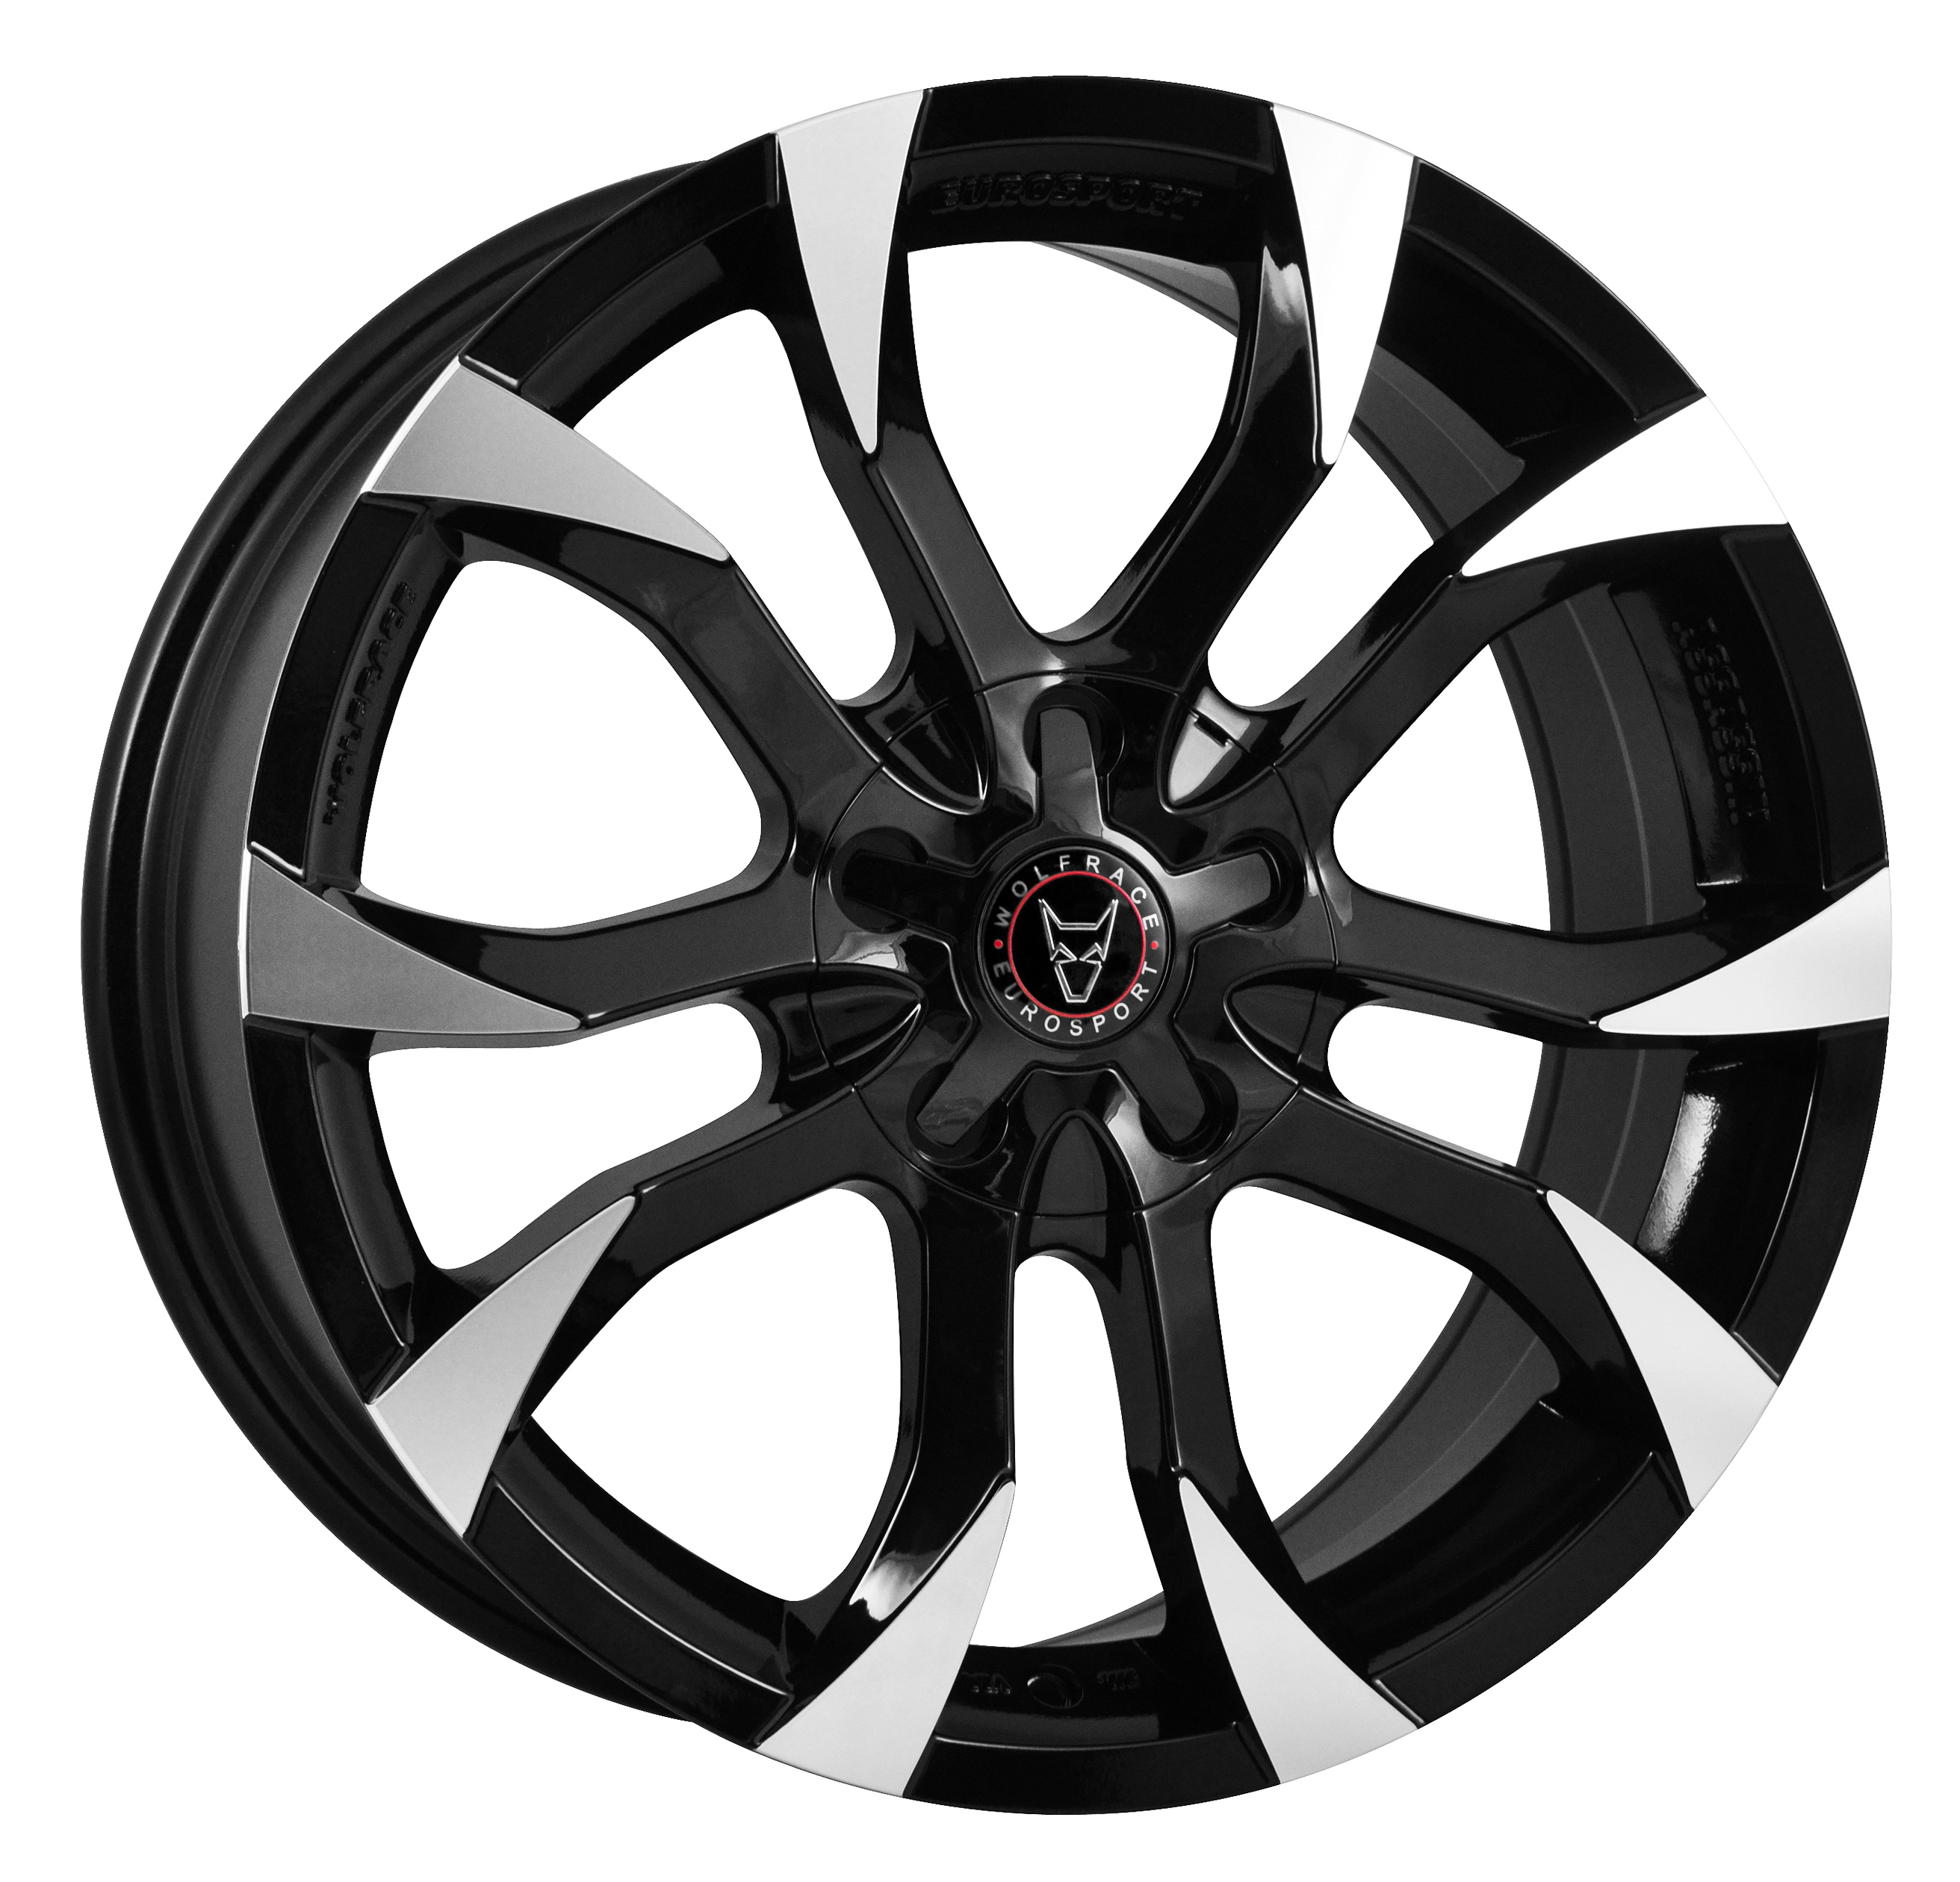 WOLFRACE EUROSPORT ASSASSIN 7x17 5x100 ET40 BLACK POLISHED